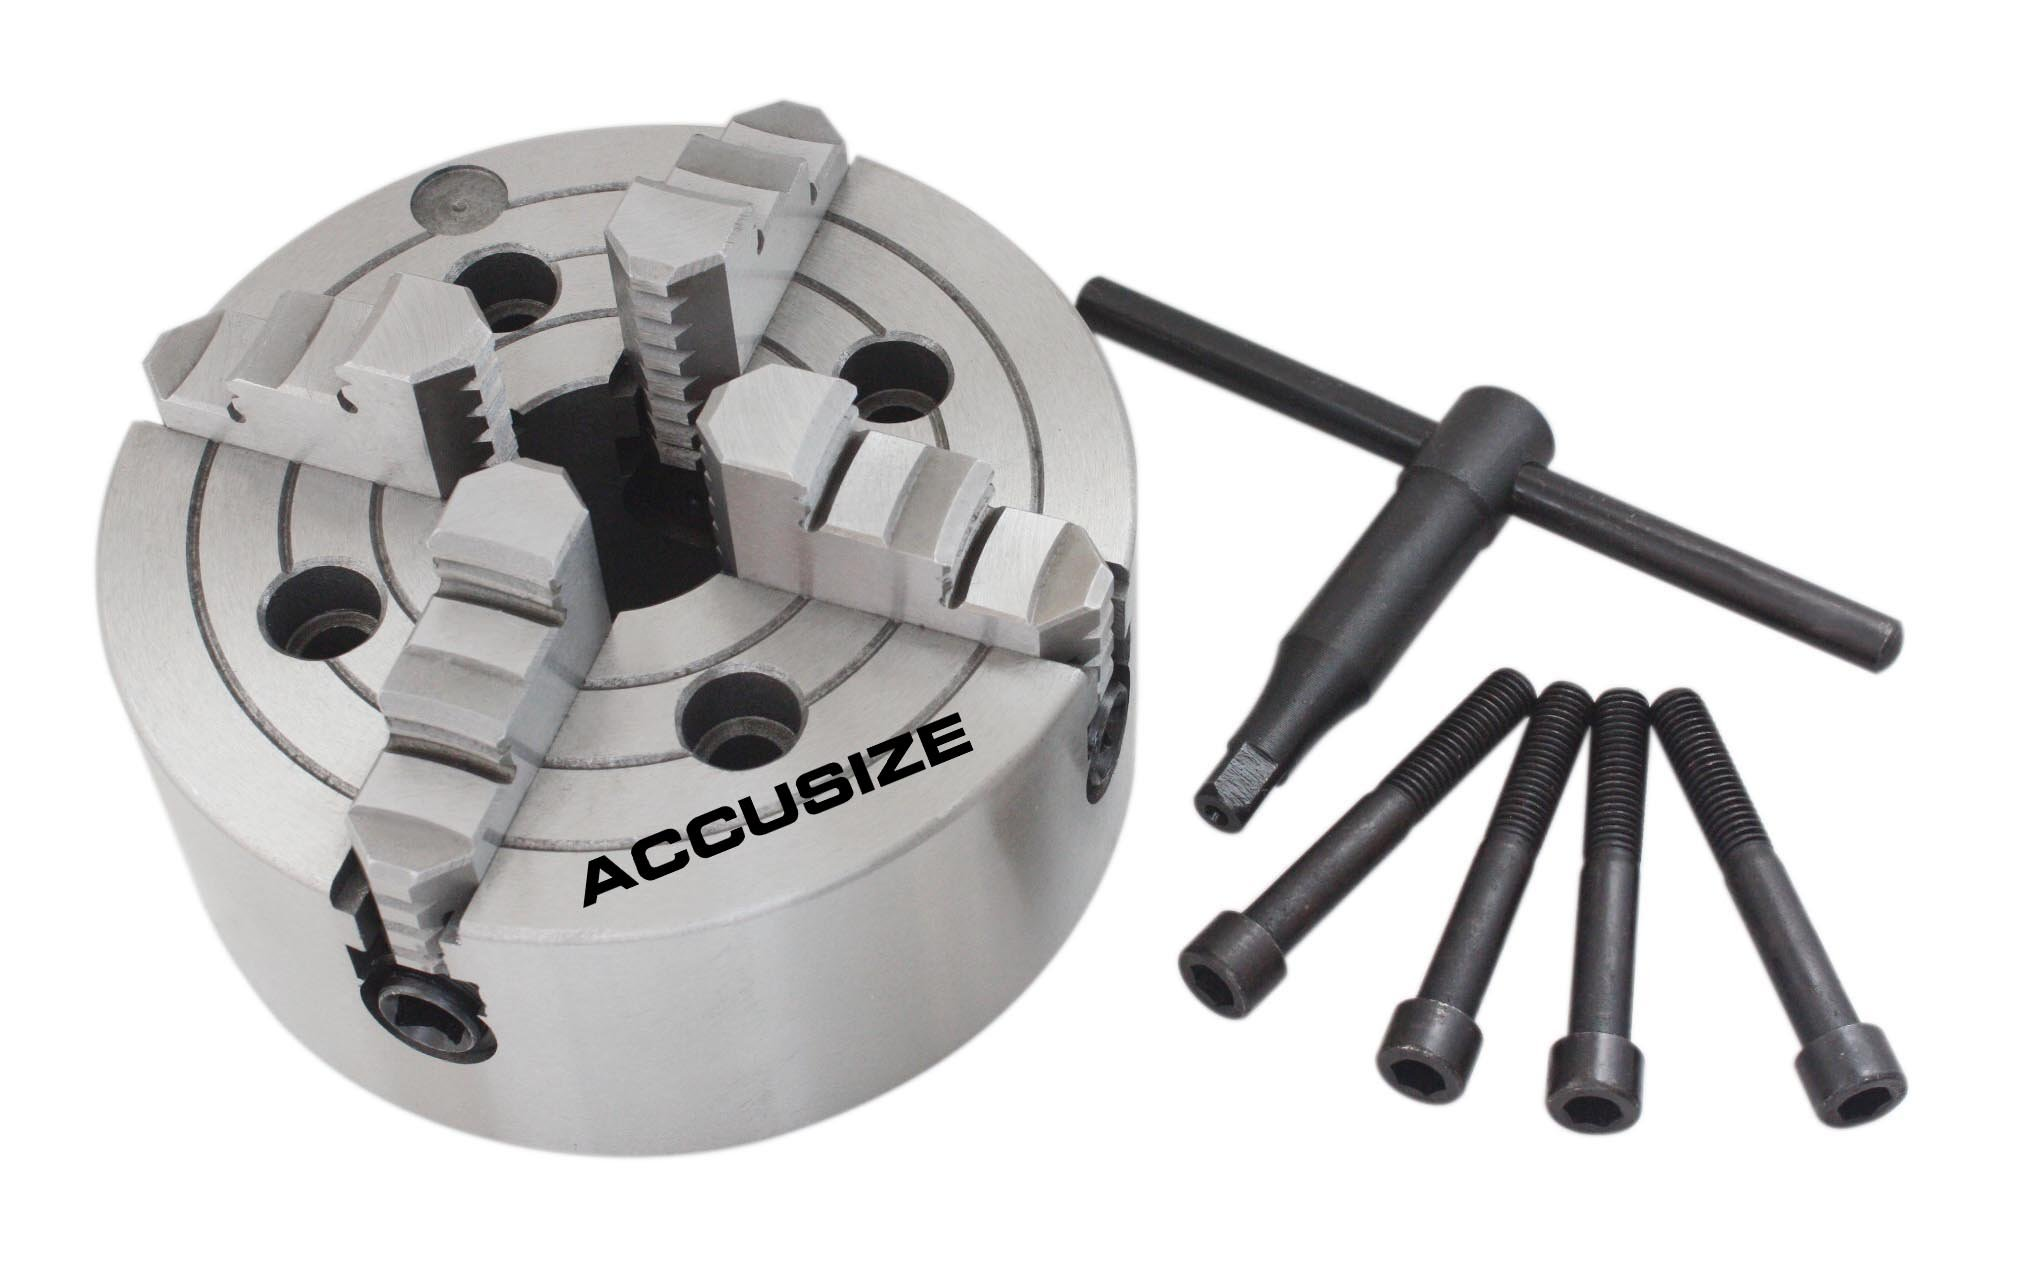 AccusizeTools - 10''/250mm 4-Jaw Independent Lathe Chuck, Plain Back, #0557-0010 by Accusize Industrial Tools